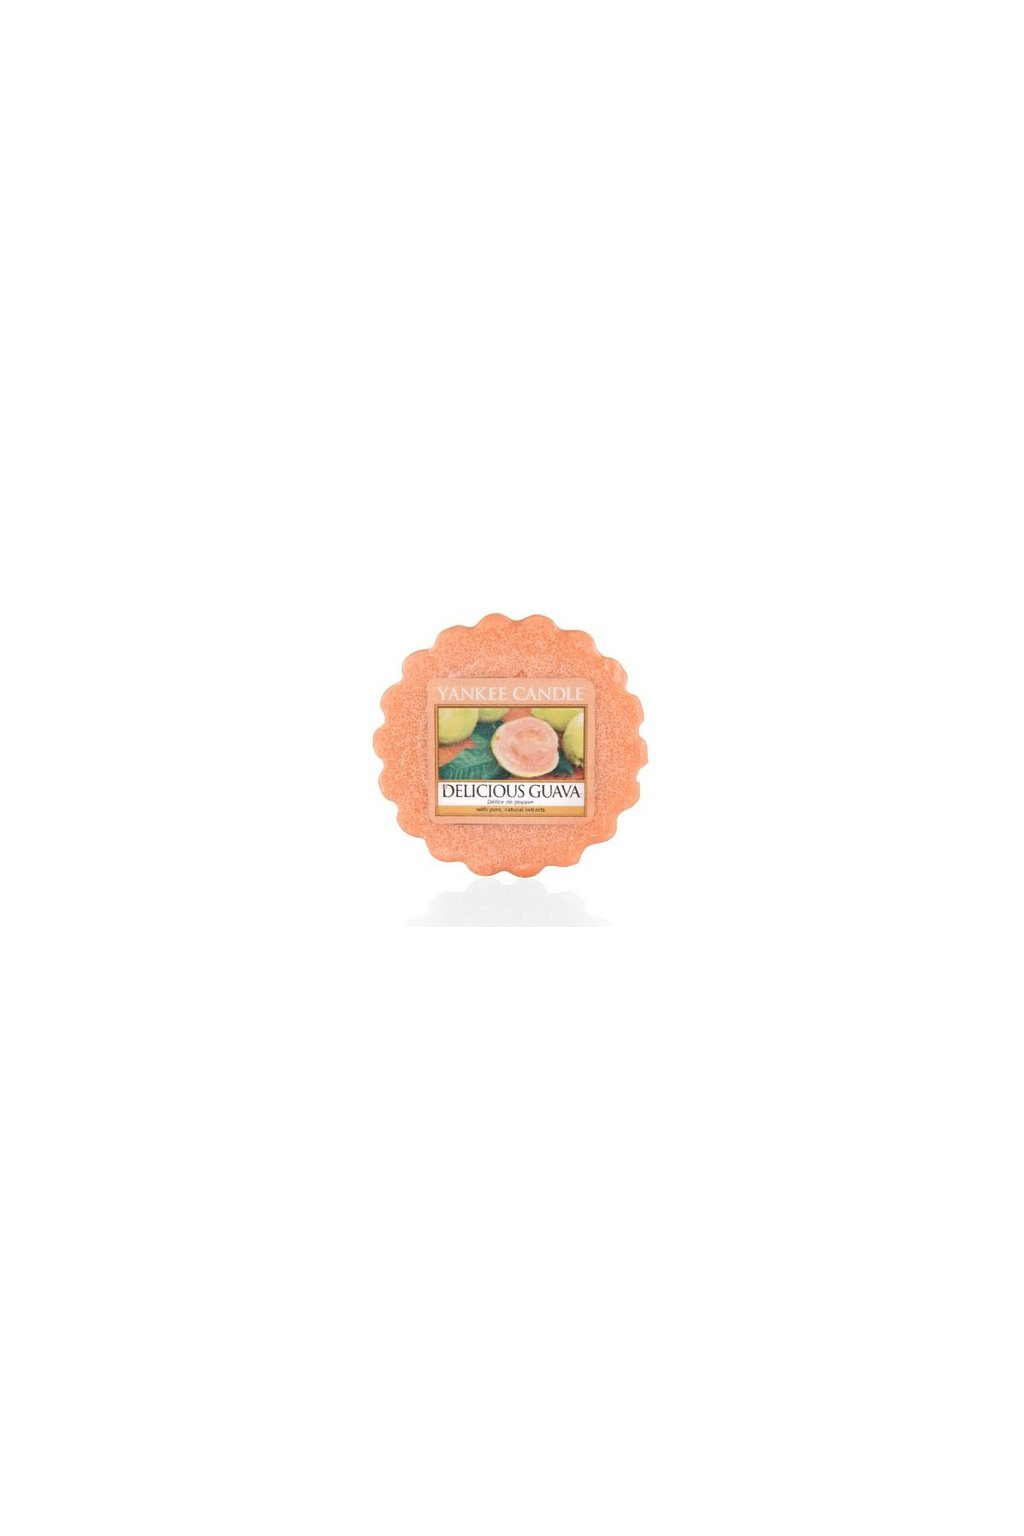 Yankee Candle Delicious Guava 22g